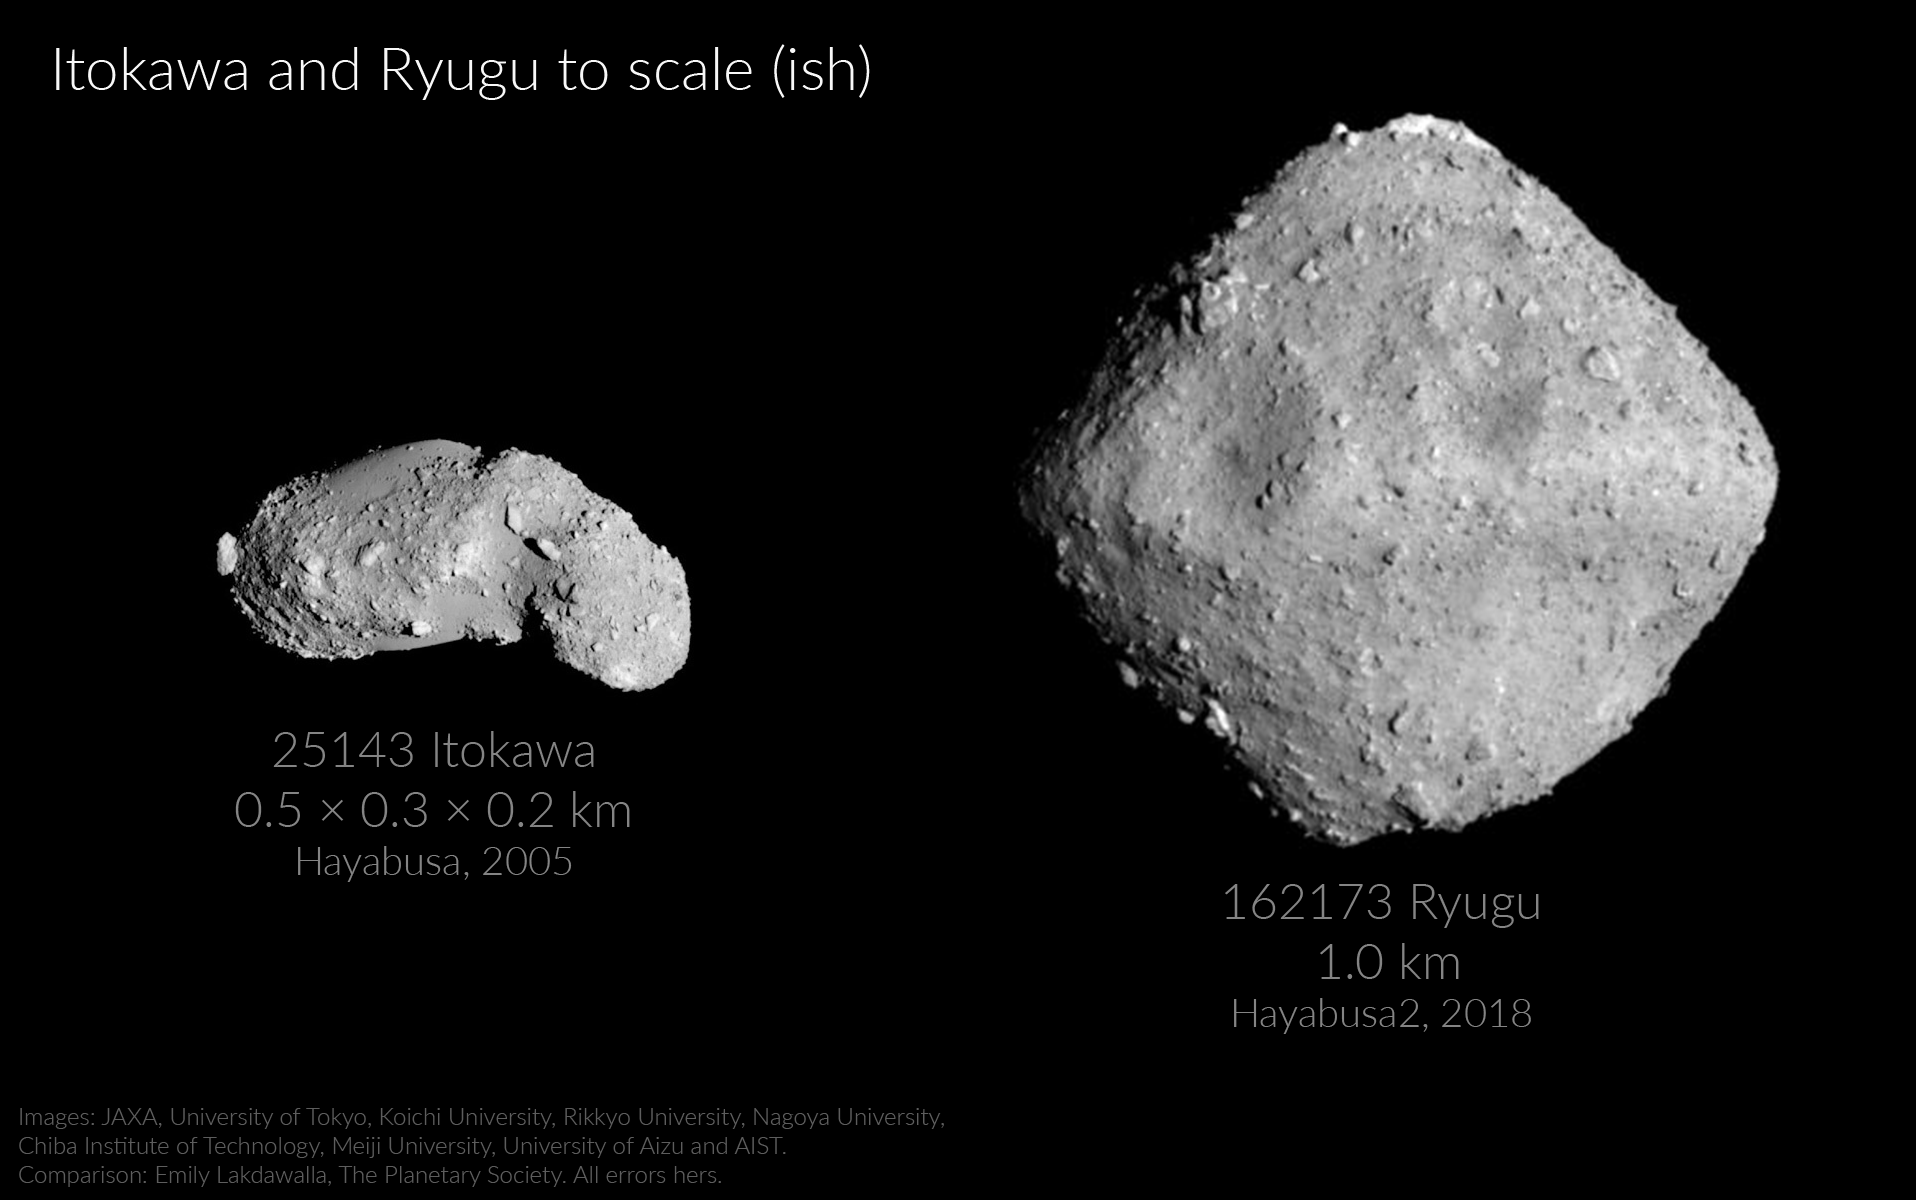 http://planetary.s3.amazonaws.com/assets/images/comparisons/20180627_itokawa-and-ryugu-to-scale.png